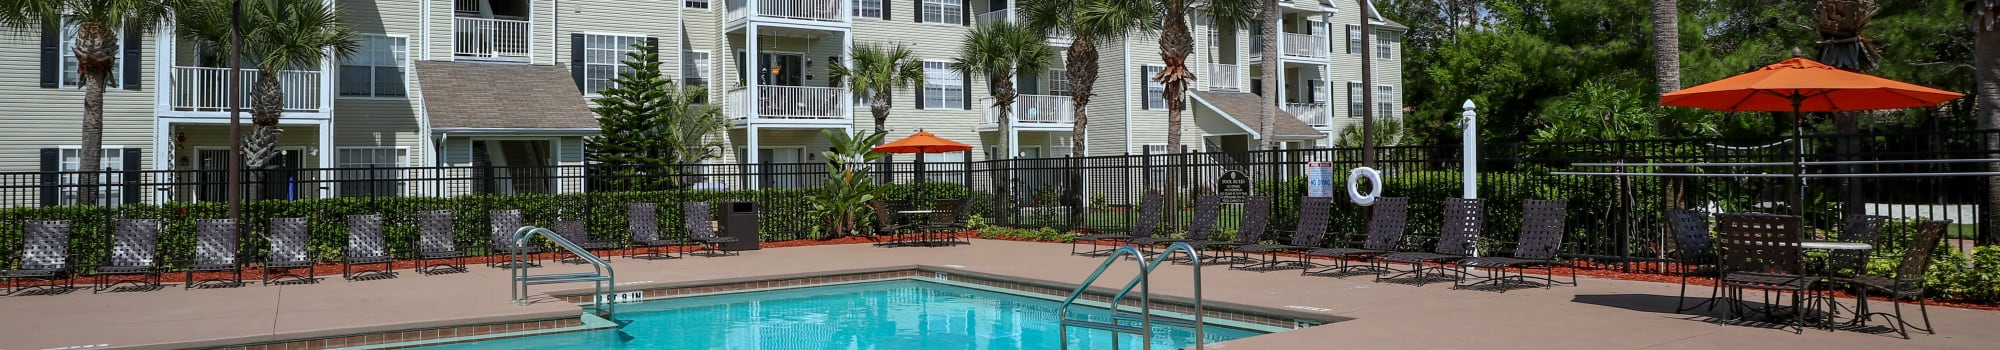 Reviews of our New Port Richey apartments